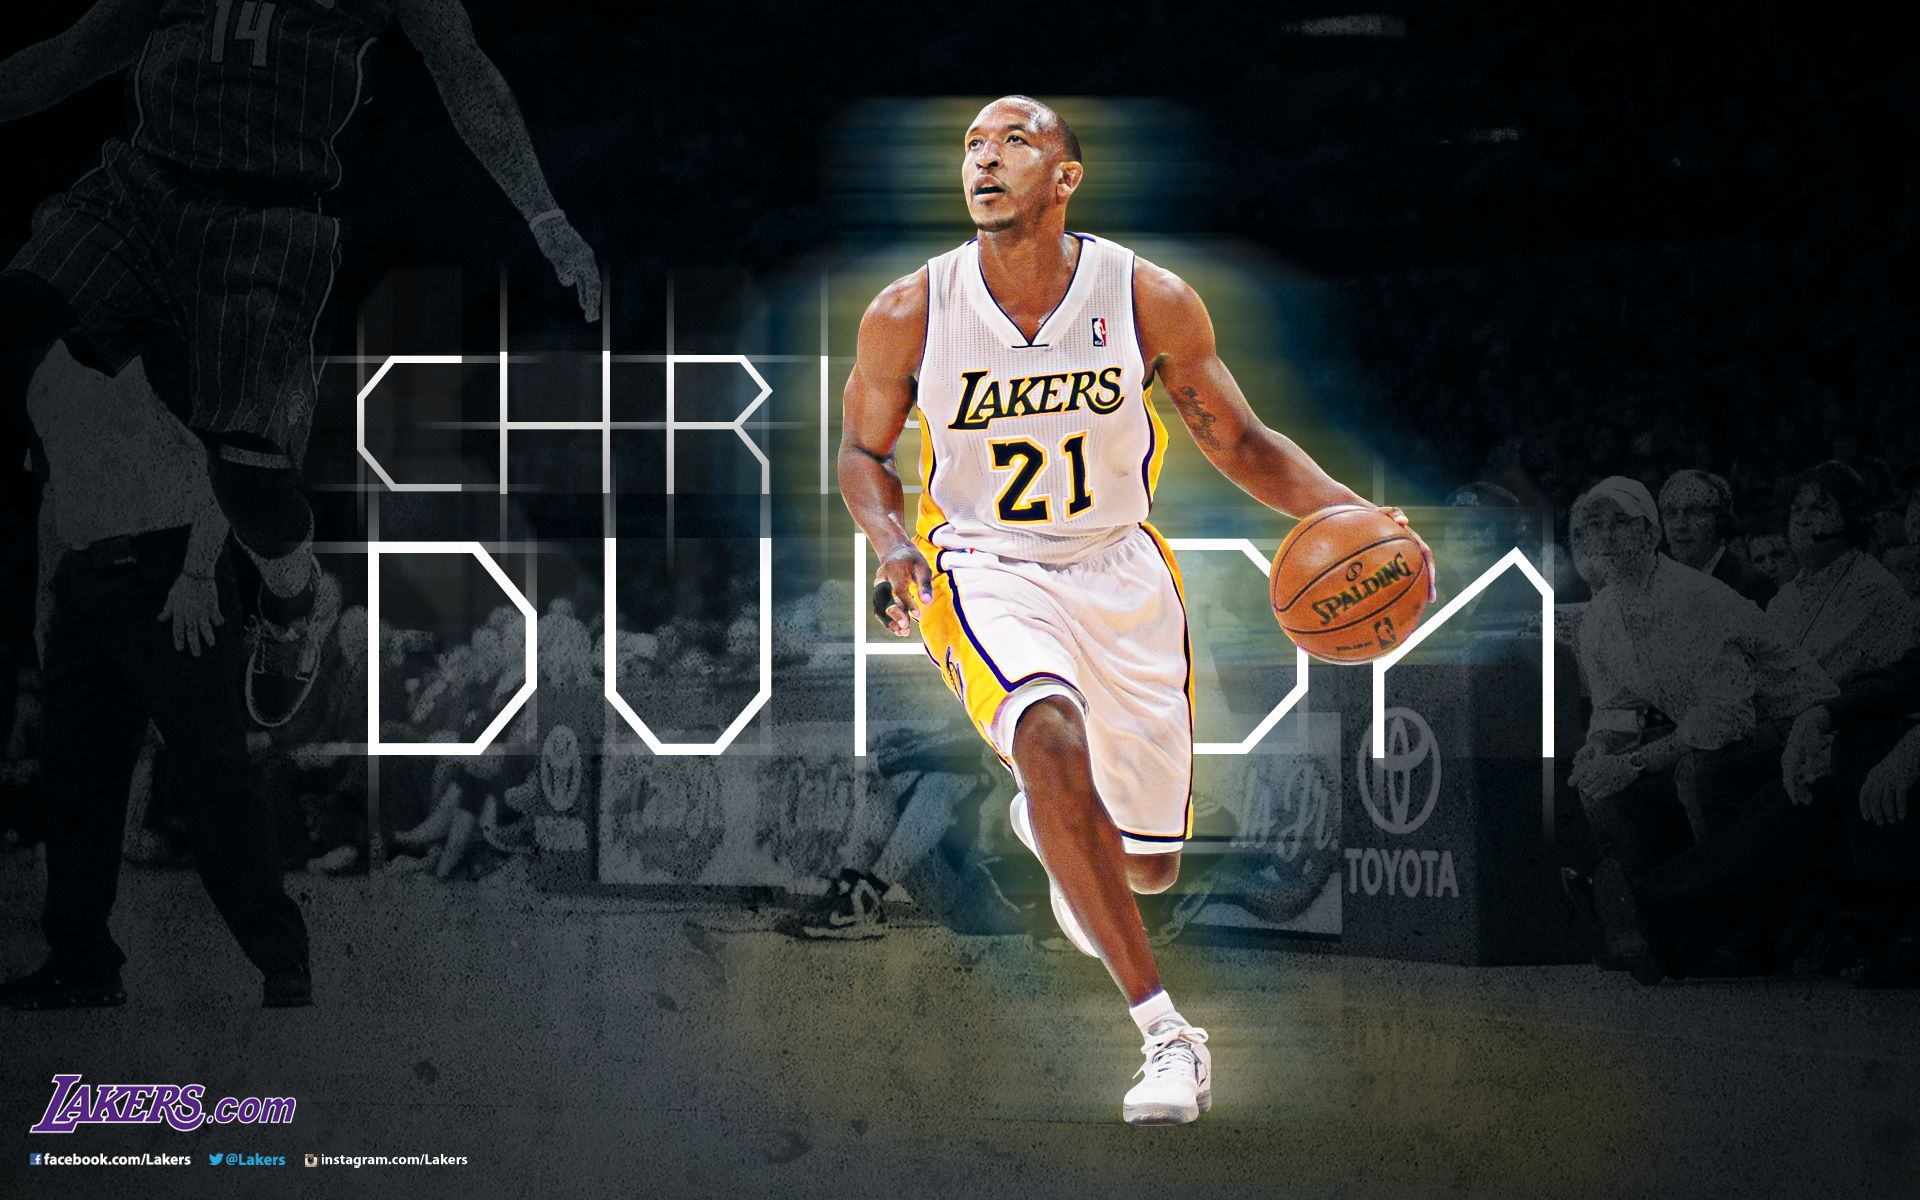 Desktop Wallpapers | Lakers Desktop Wallpapers | THE OFFICIAL SITE OF THE LOS ANGELES ...